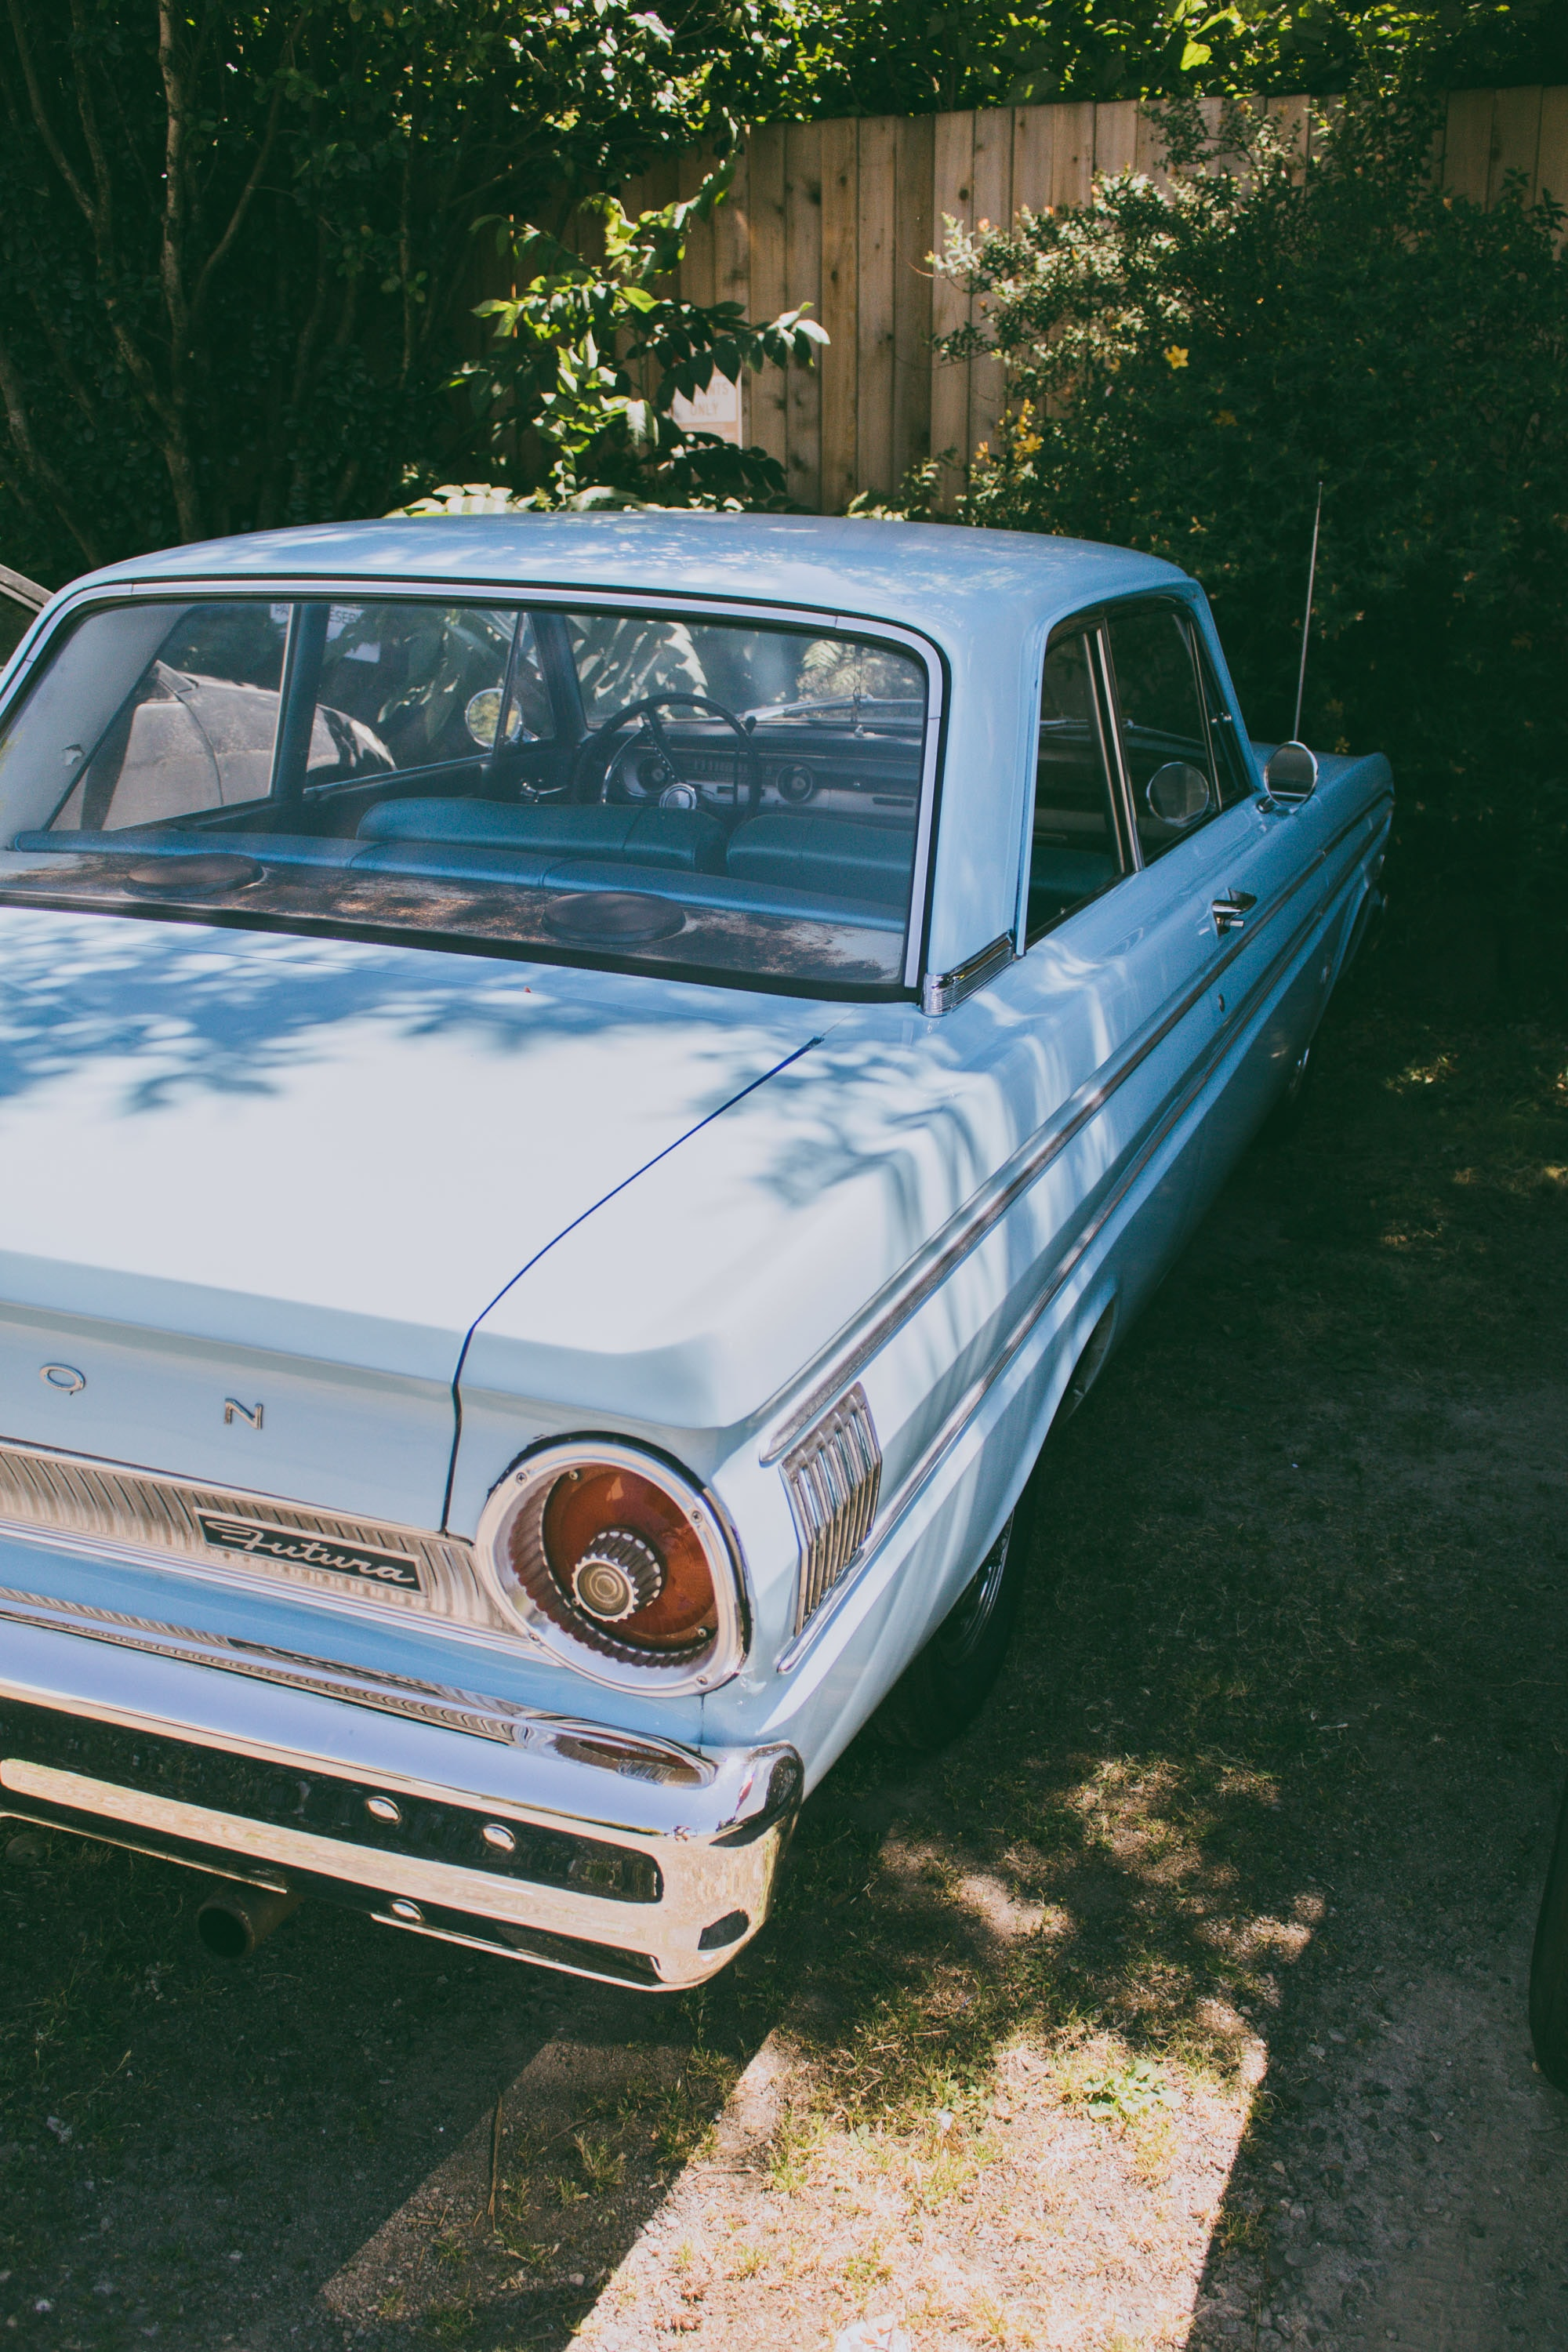 photography of classic white vehicle